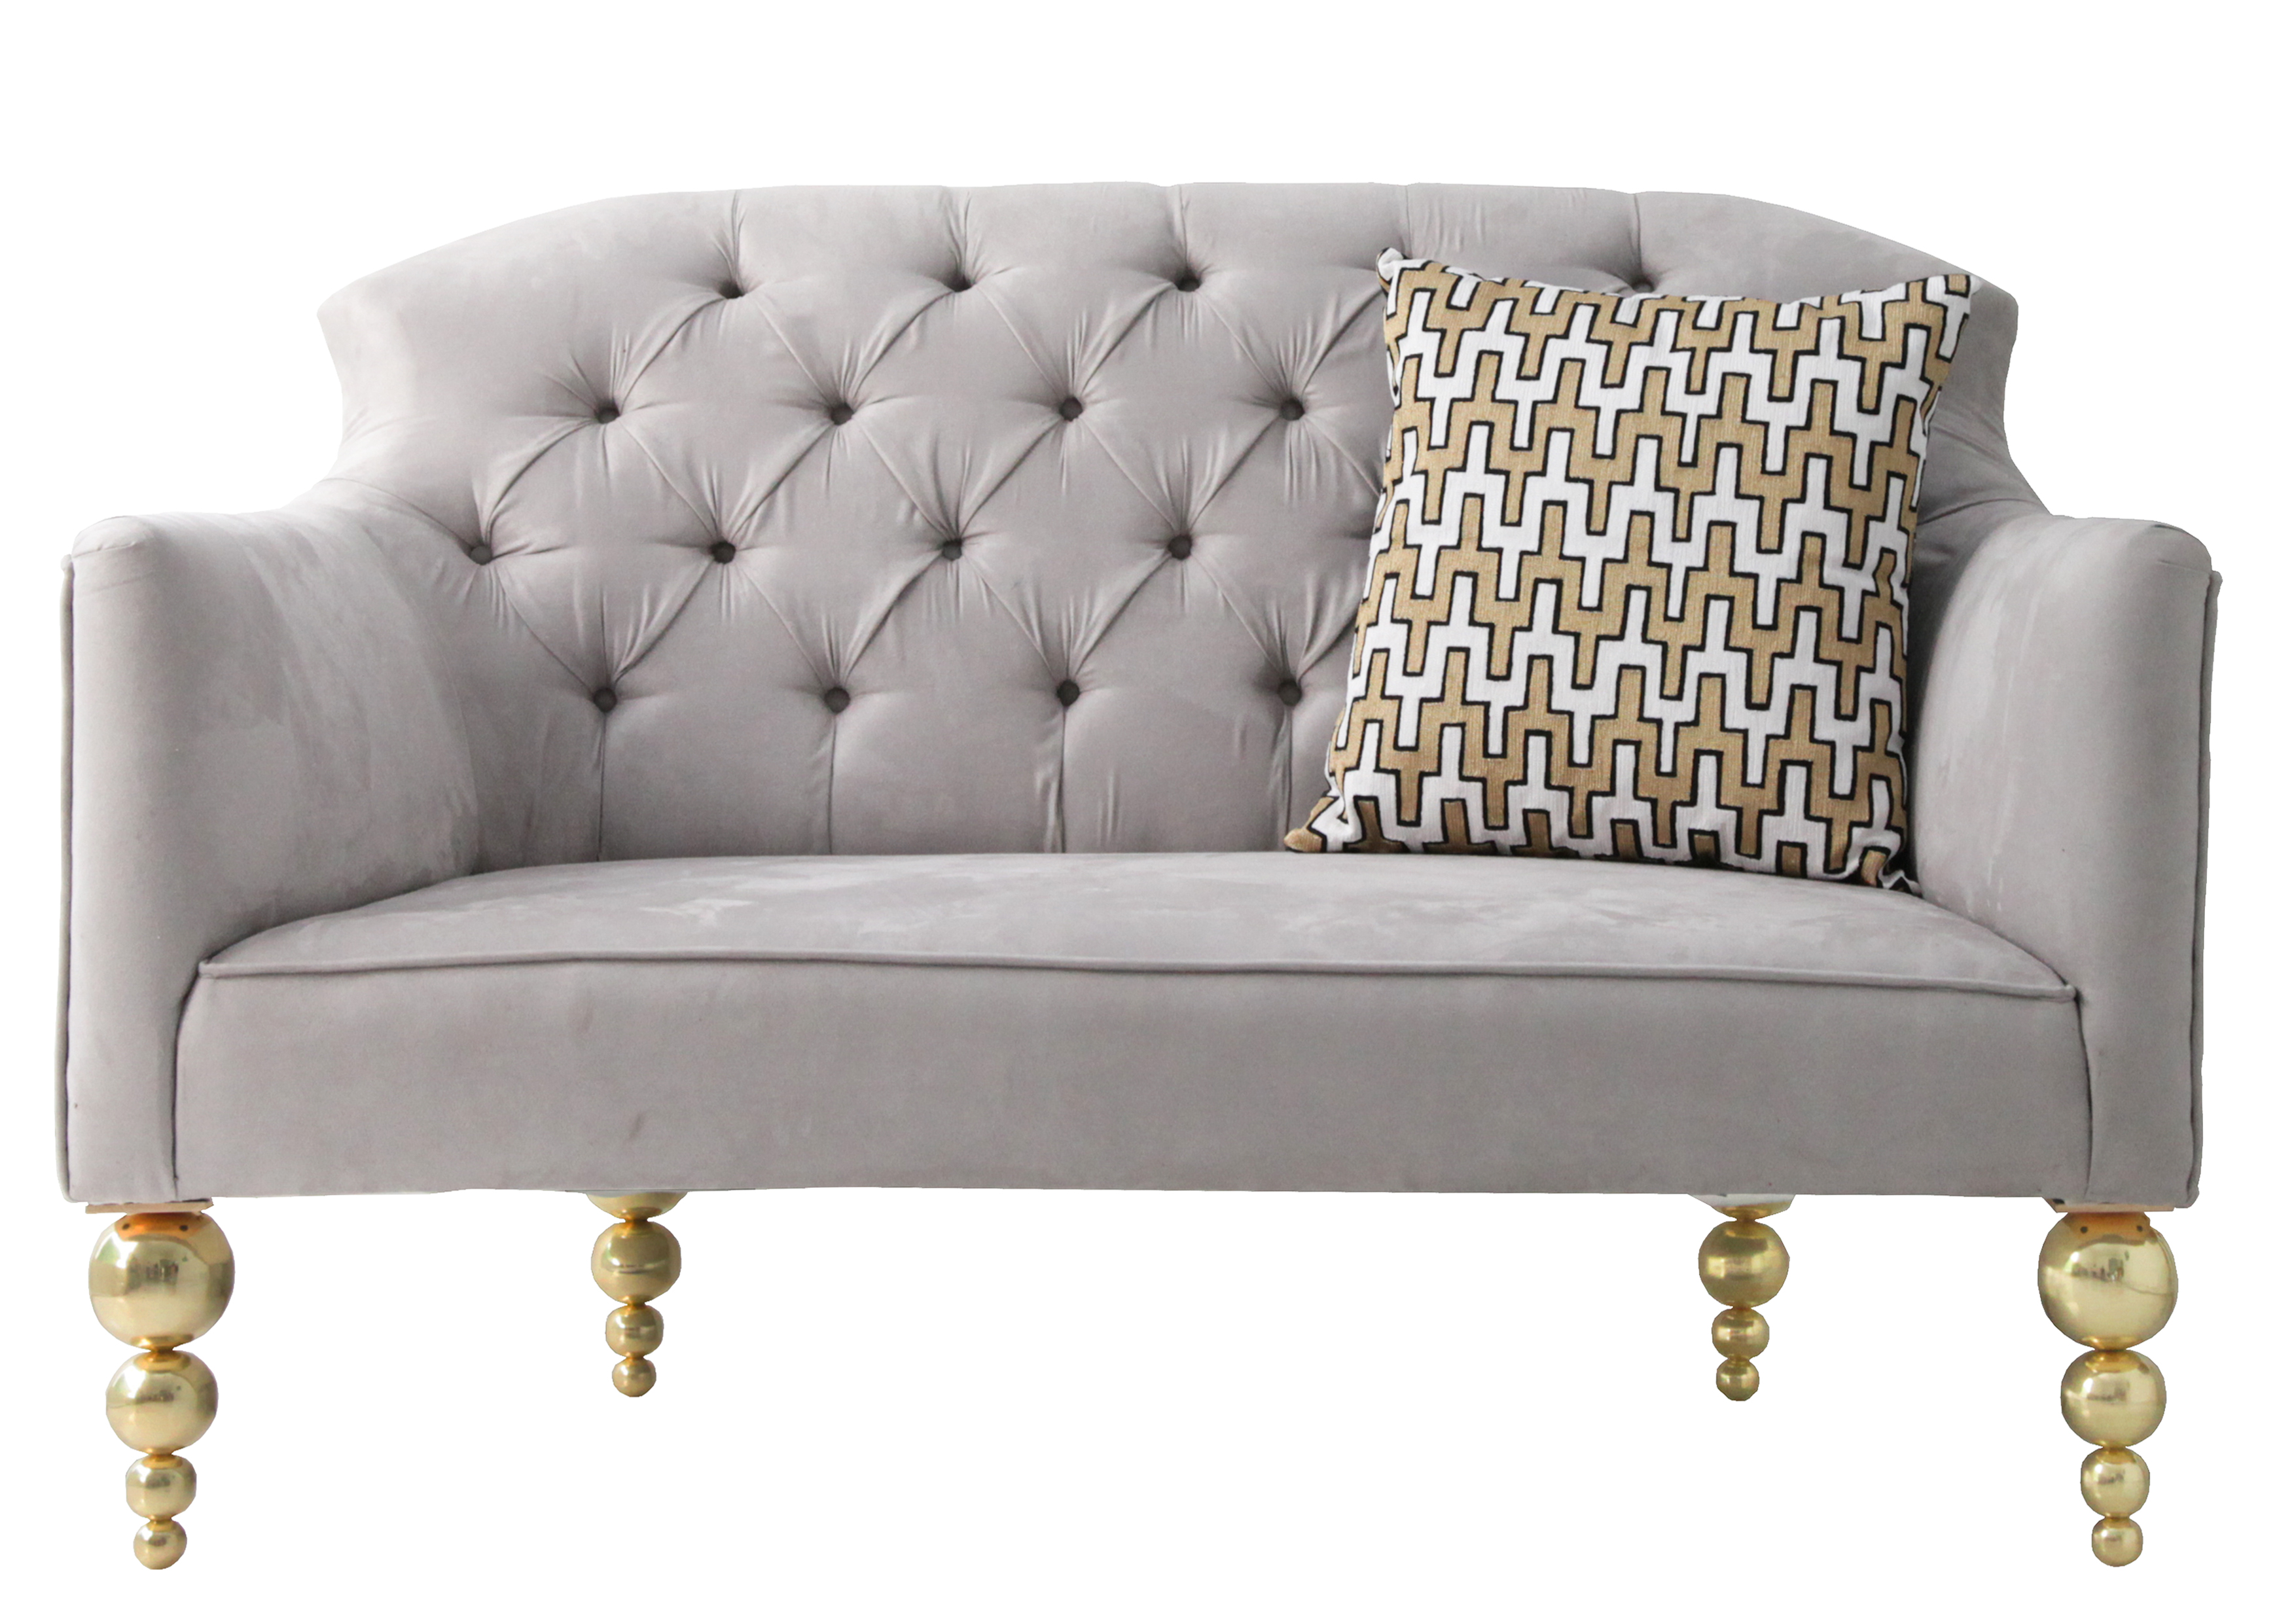 Aurum Home - Beaded Sofa